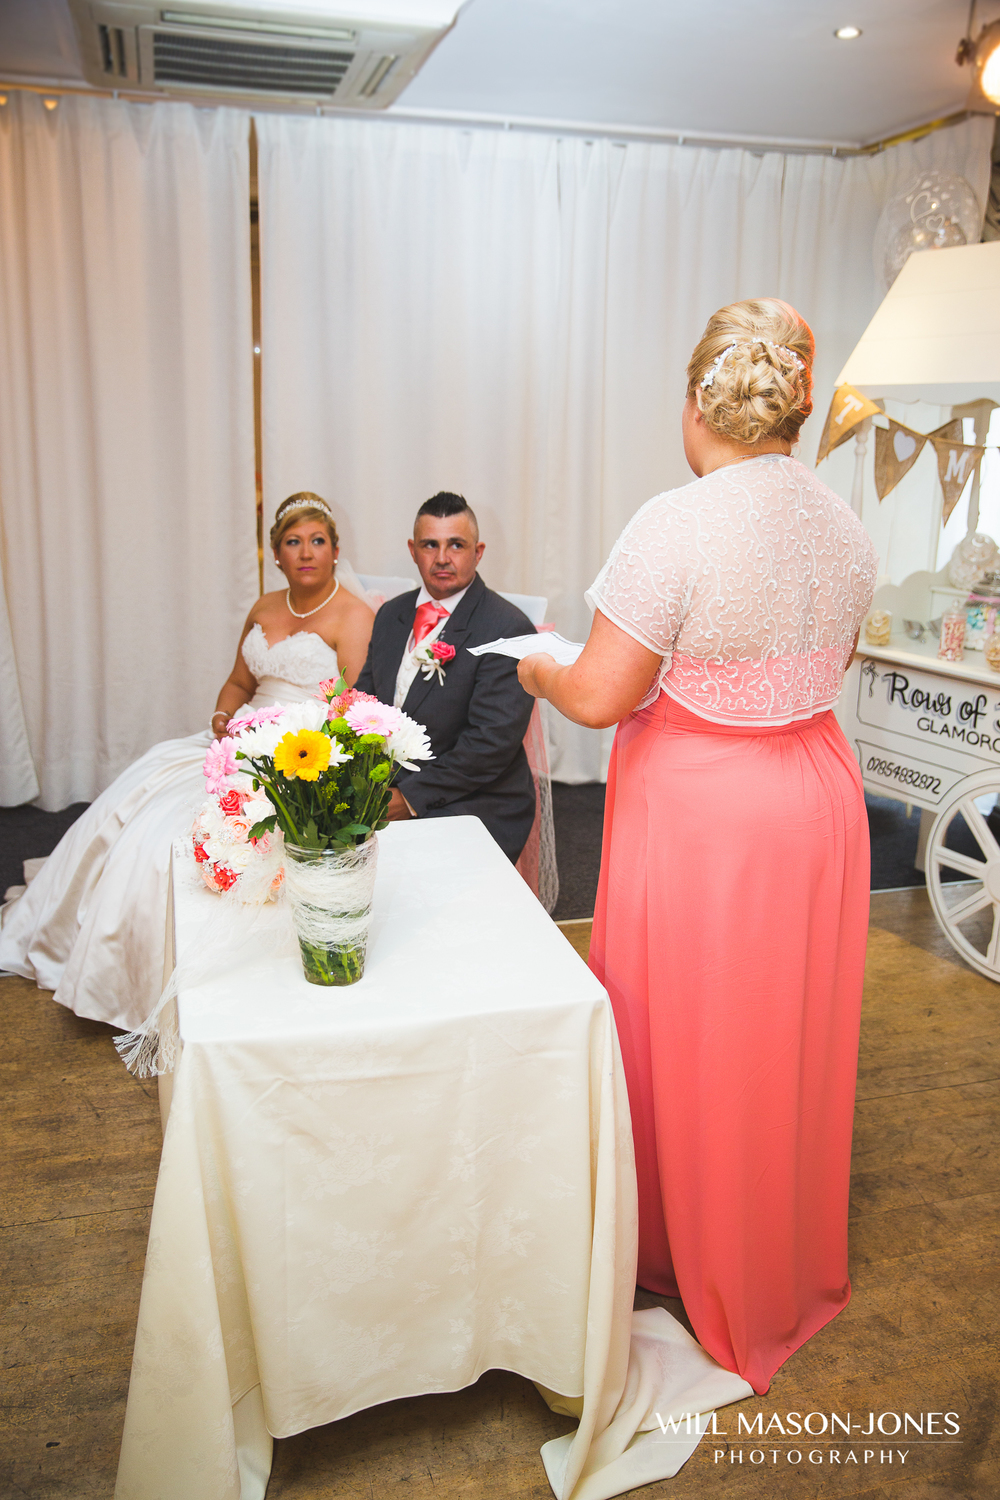 aberavonwedding-236.jpg